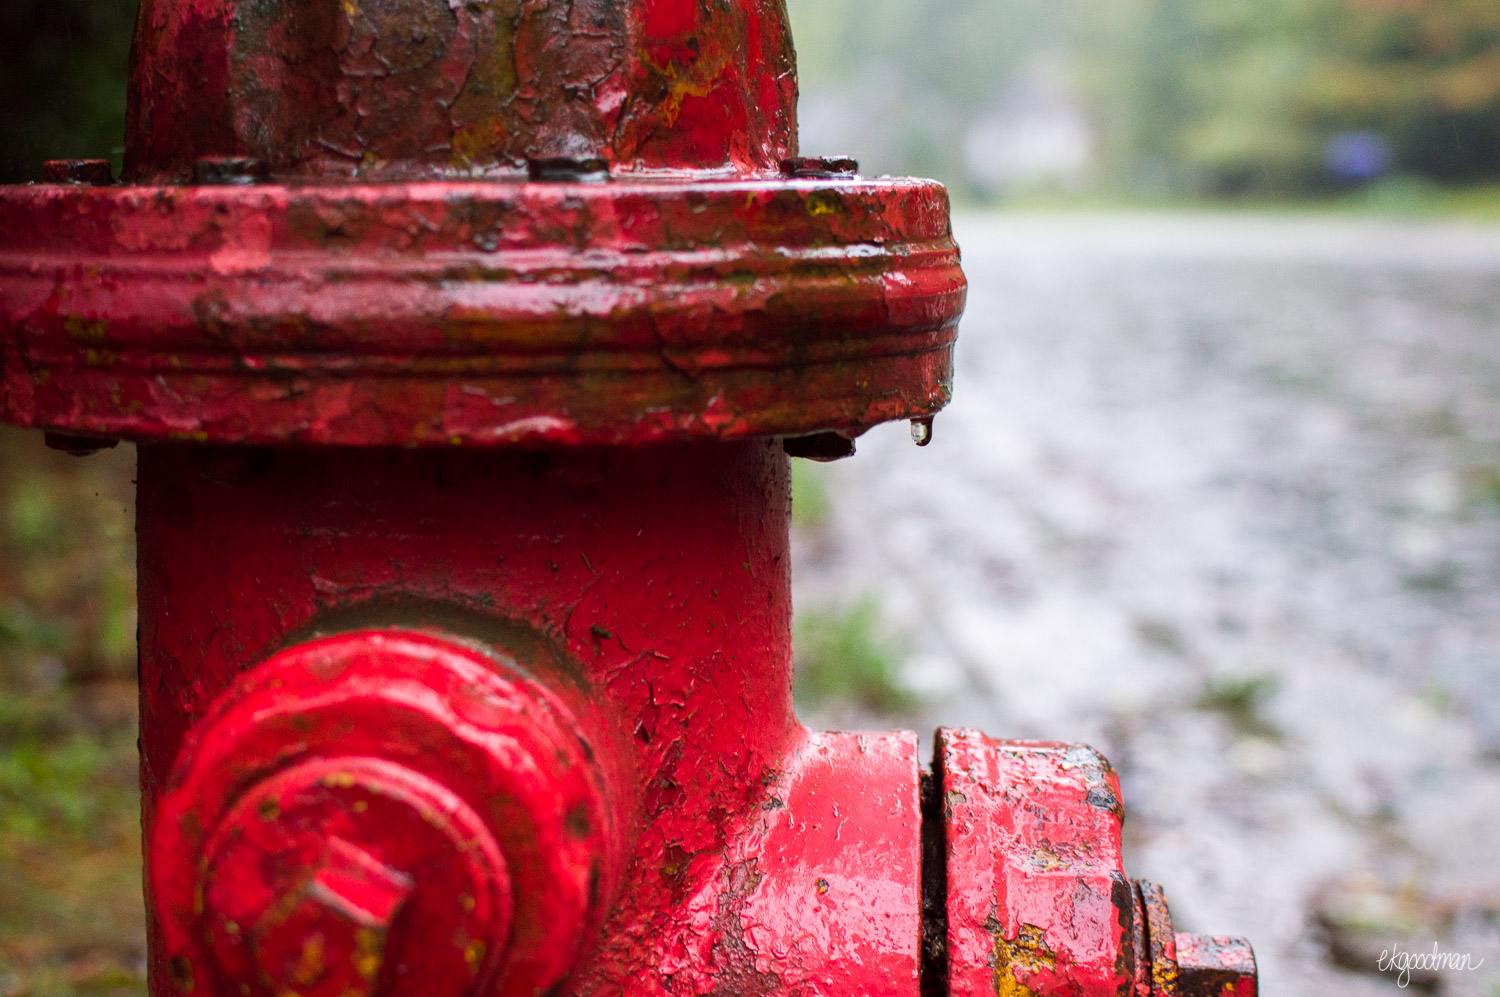 Hydrant? Hydrate? Something like that.